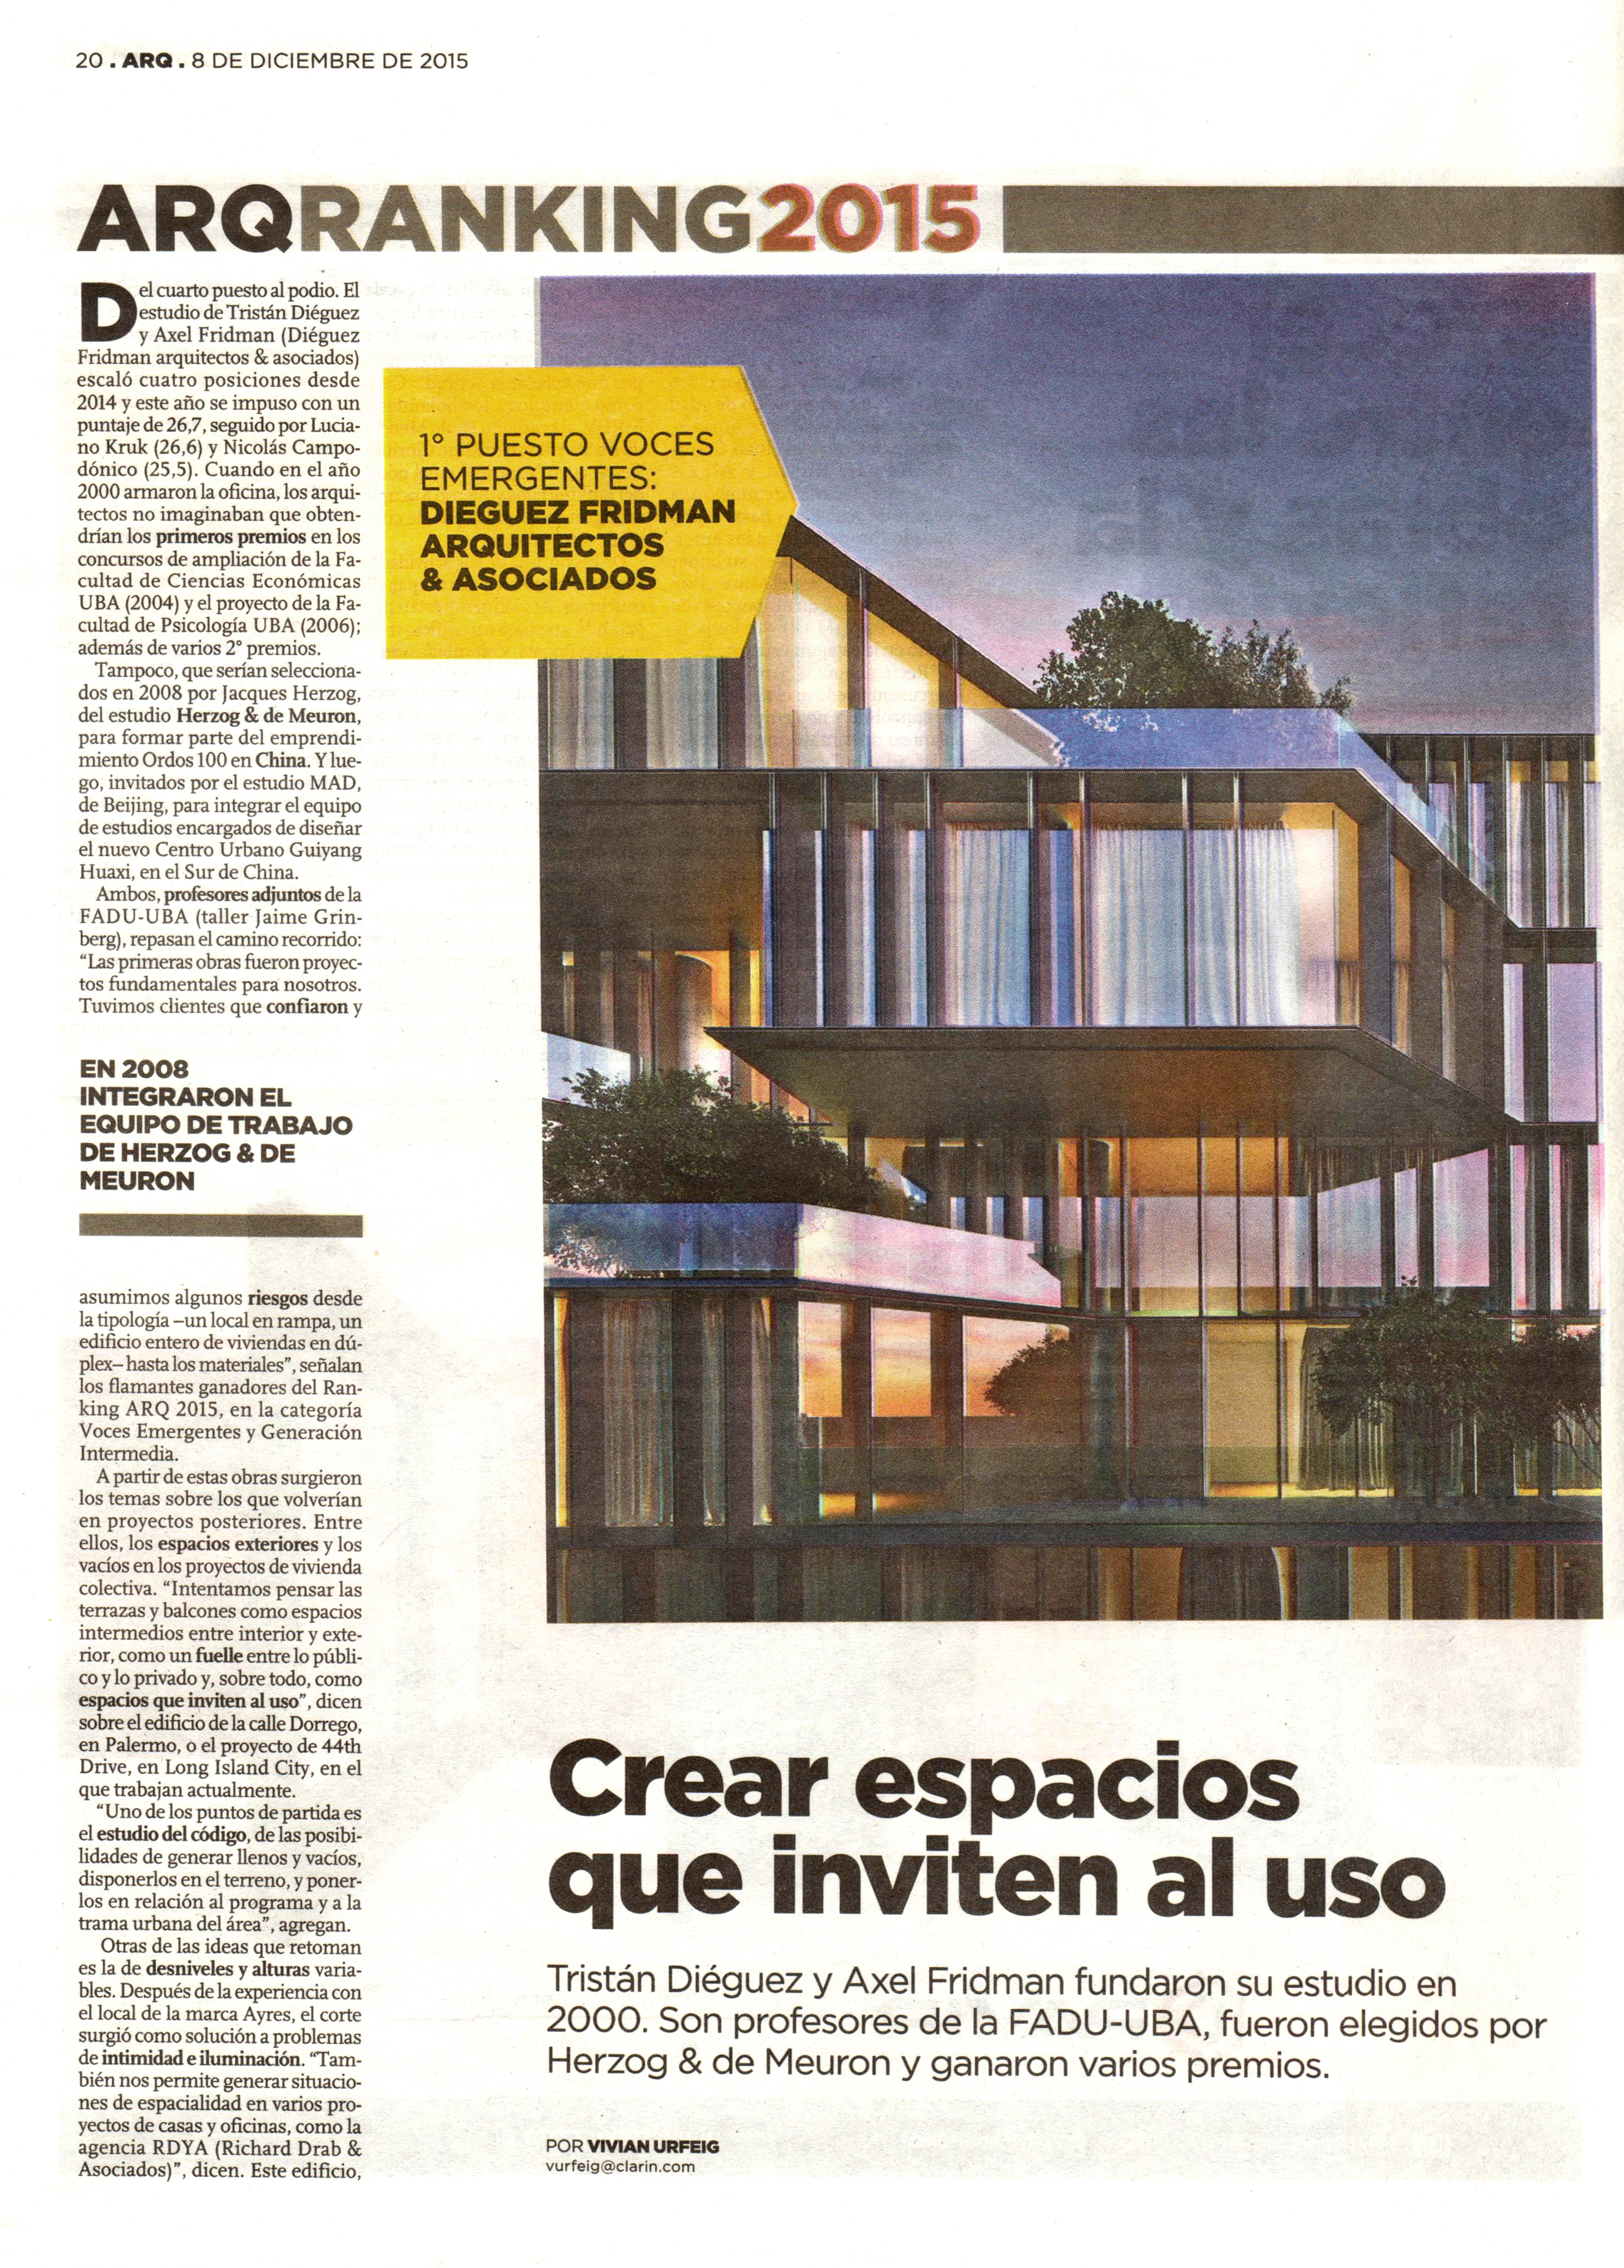 No 1 in clarin arq 2015 ranking of architectural design for Architecture design company ranking